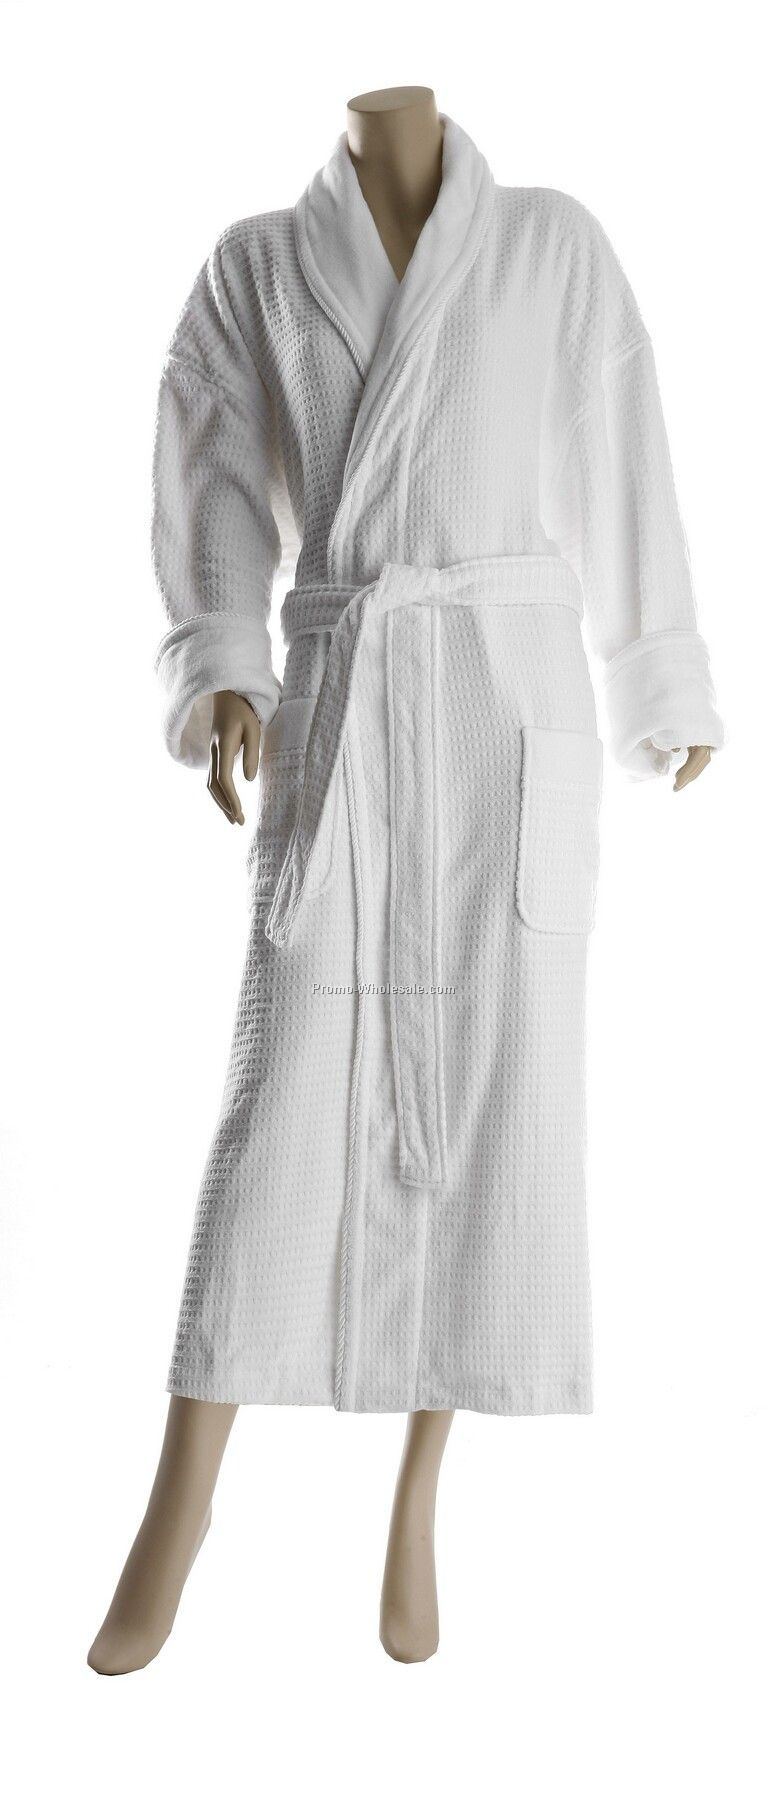 "50"" High Low Square Velour Hotel Shawl Collar Robe(Osfm)"